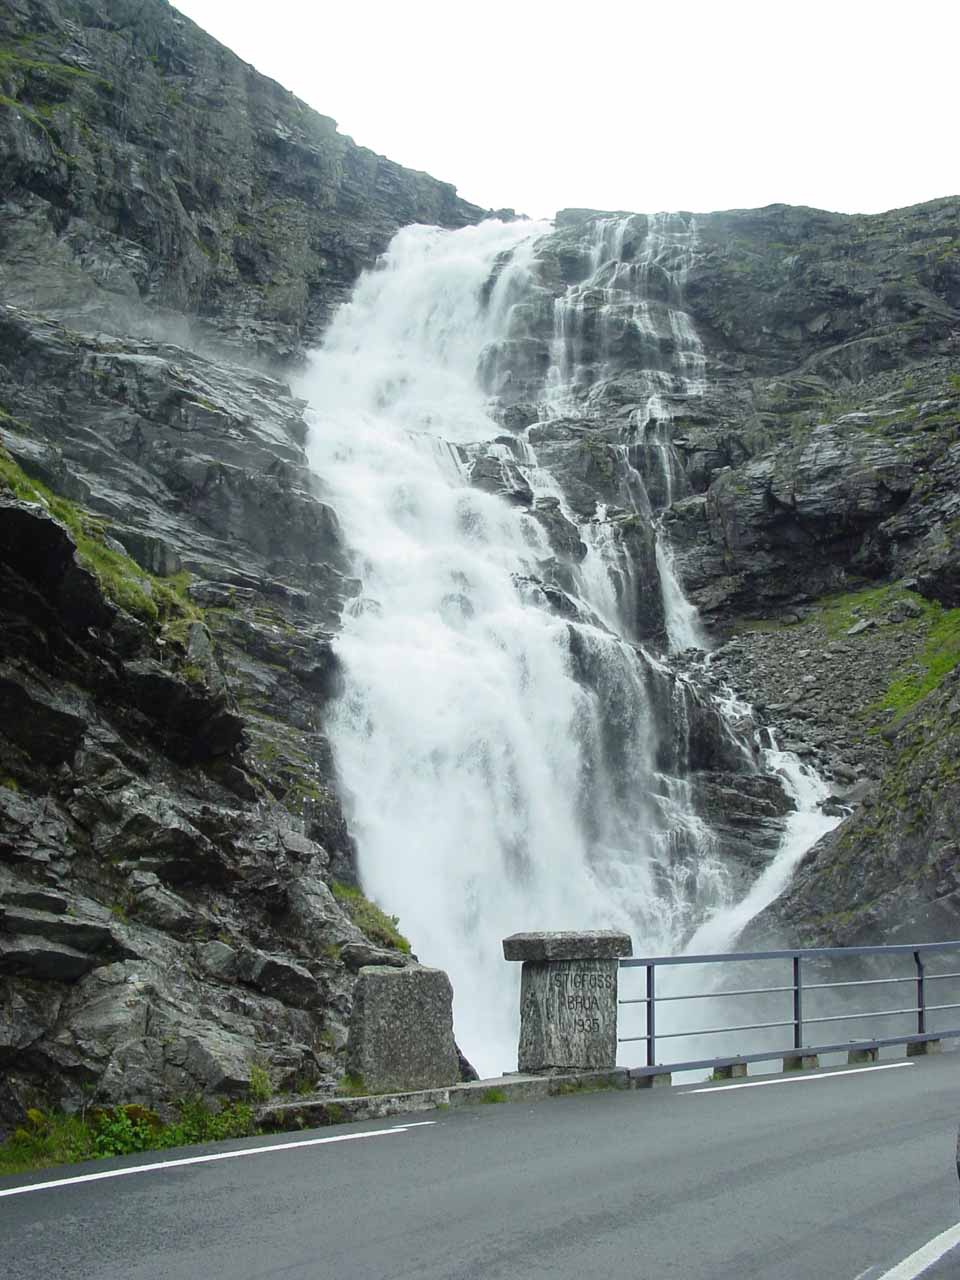 Looking up at the upper sections of Stigfossen from the Trollstigen road next to the bridge Stigfossbrua